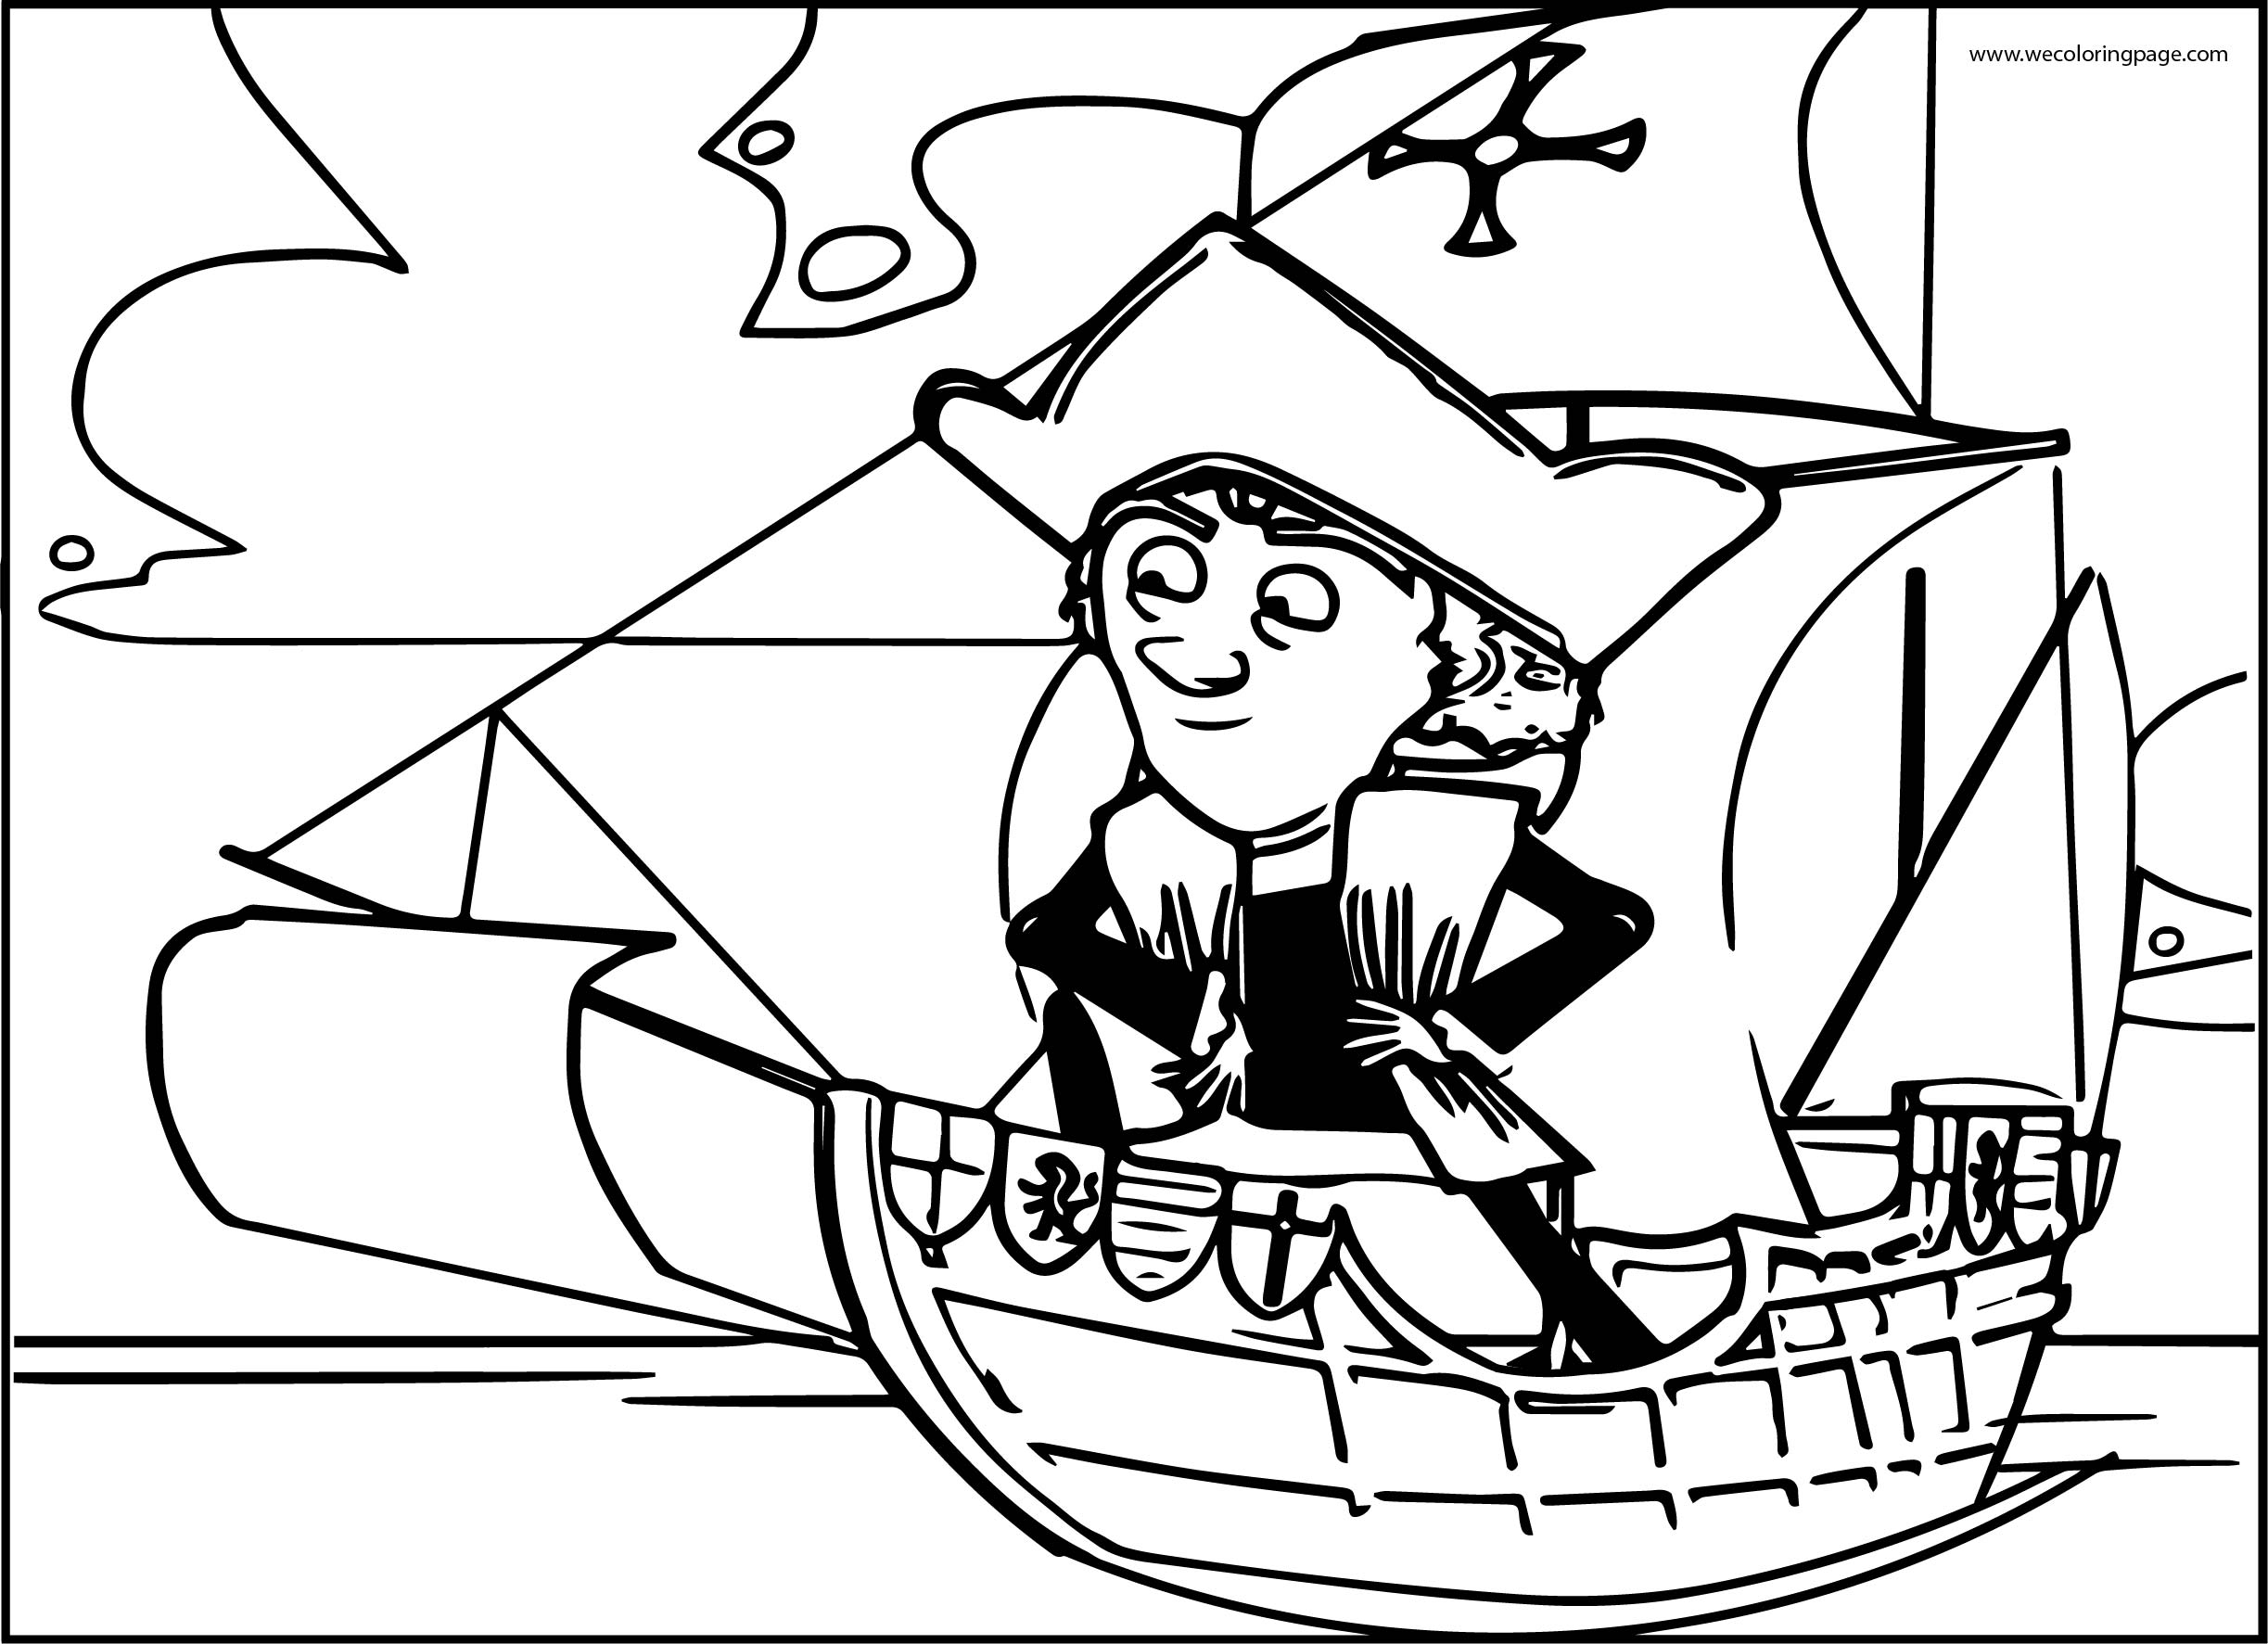 Christopher Columbus Coloring Page Ship | Wecoloringpage.com